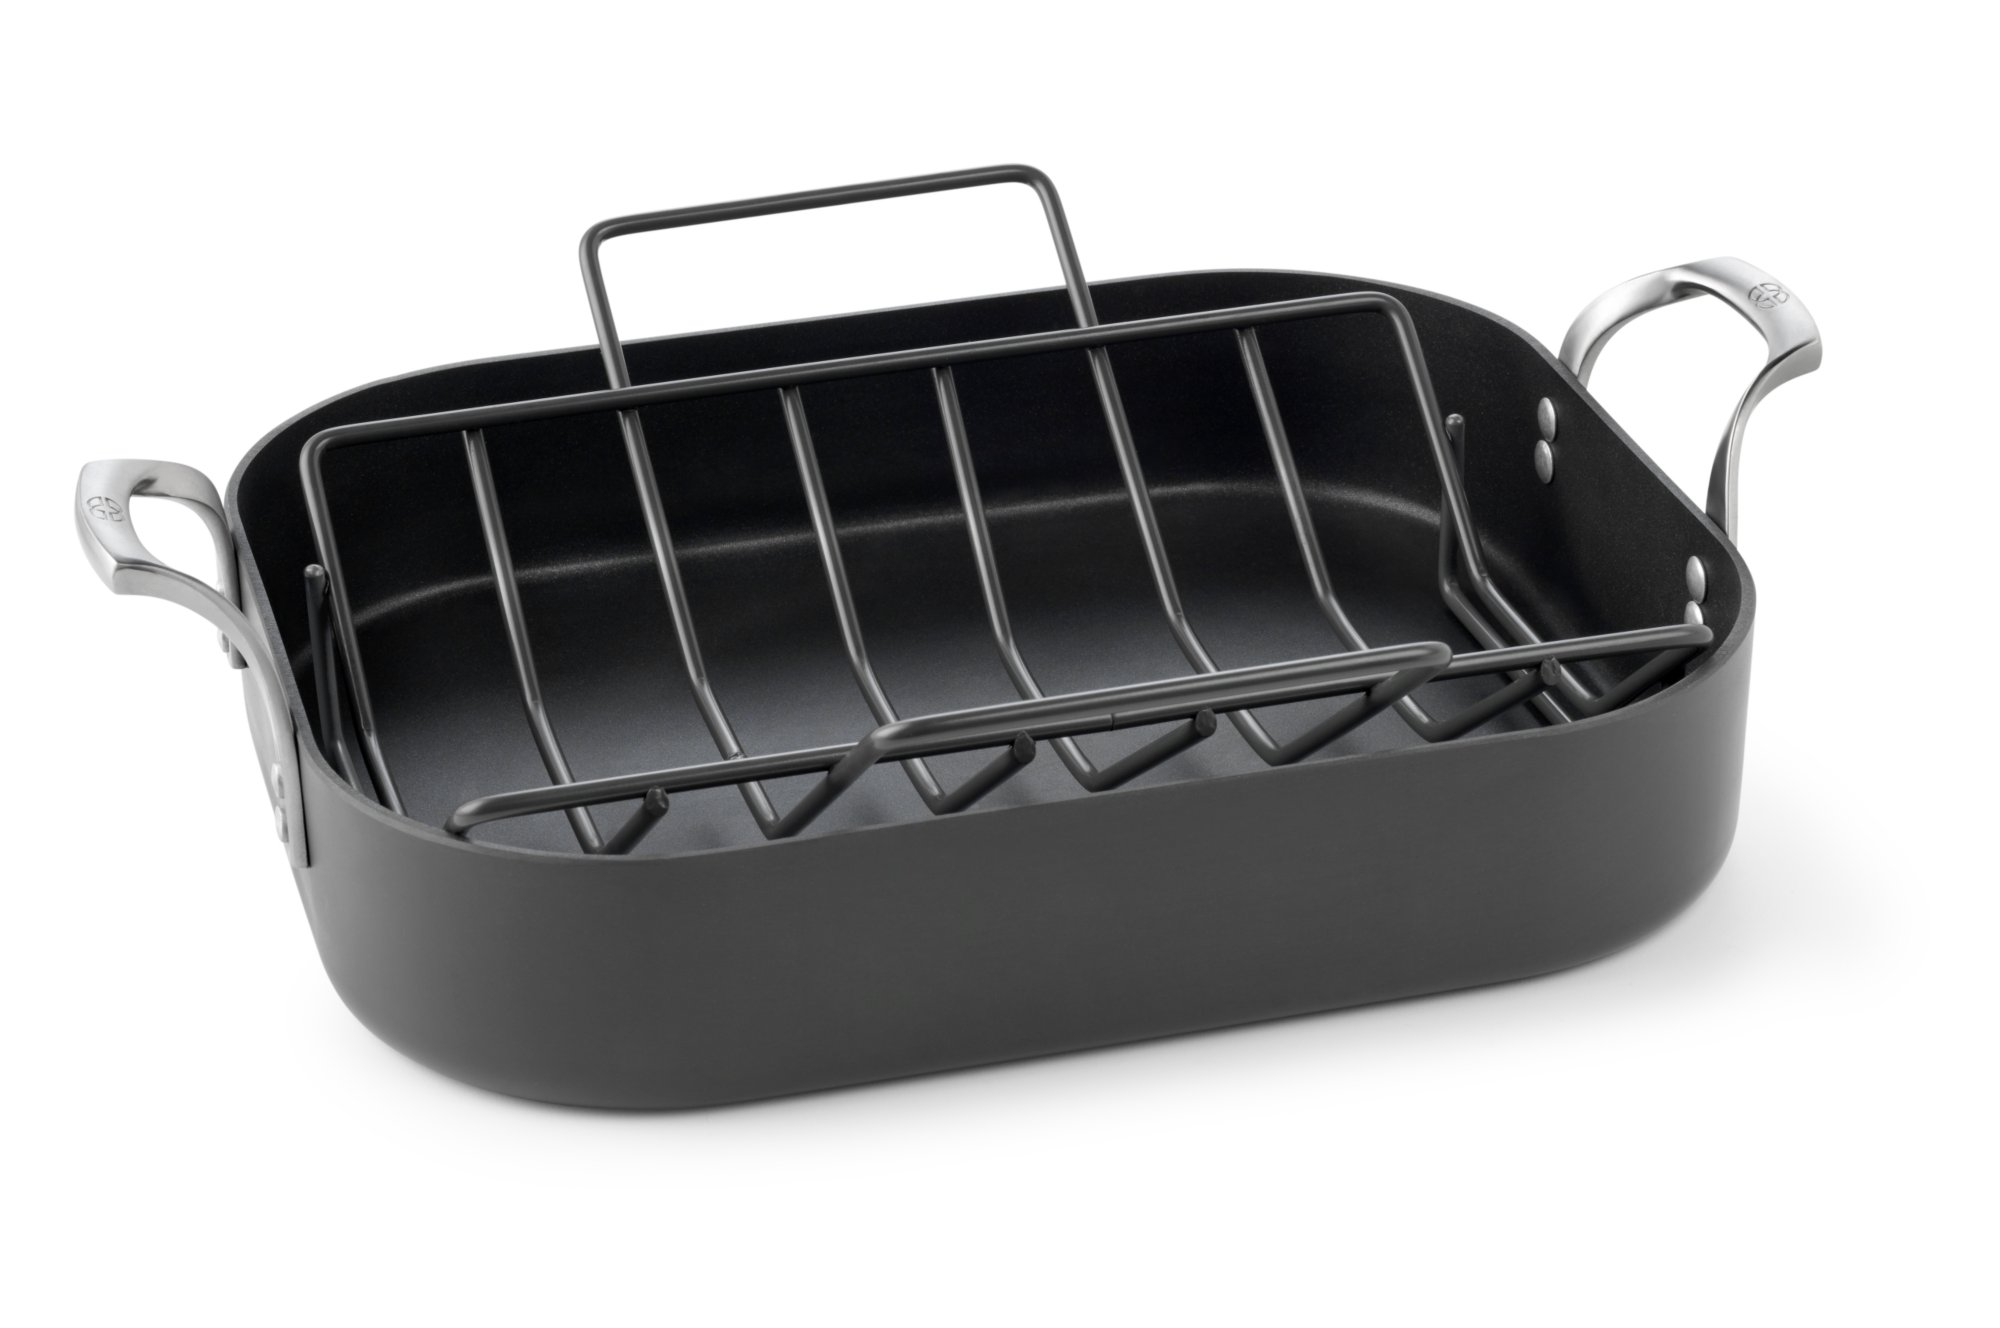 cookware qvc rack n pan contemporary calphalon slimline roaster com food cook stainless kitchen pans essentials c with roasting s